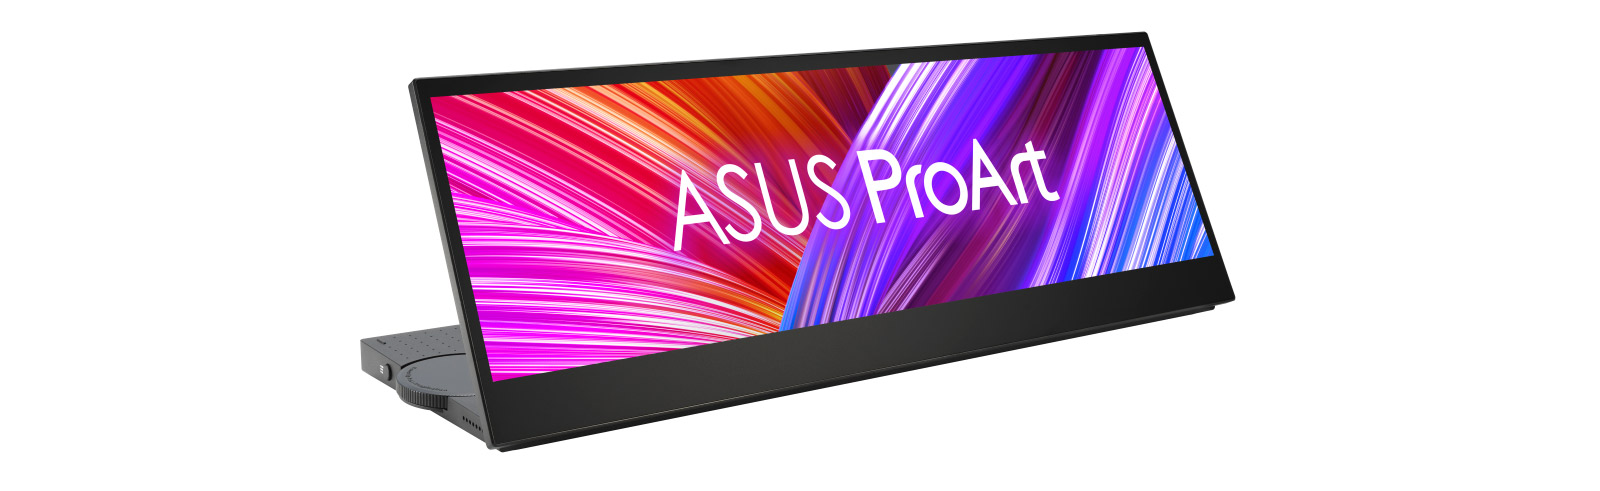 The Asus PA147CDV is a portable, 32:9 ProArt Display designed for creative professionals